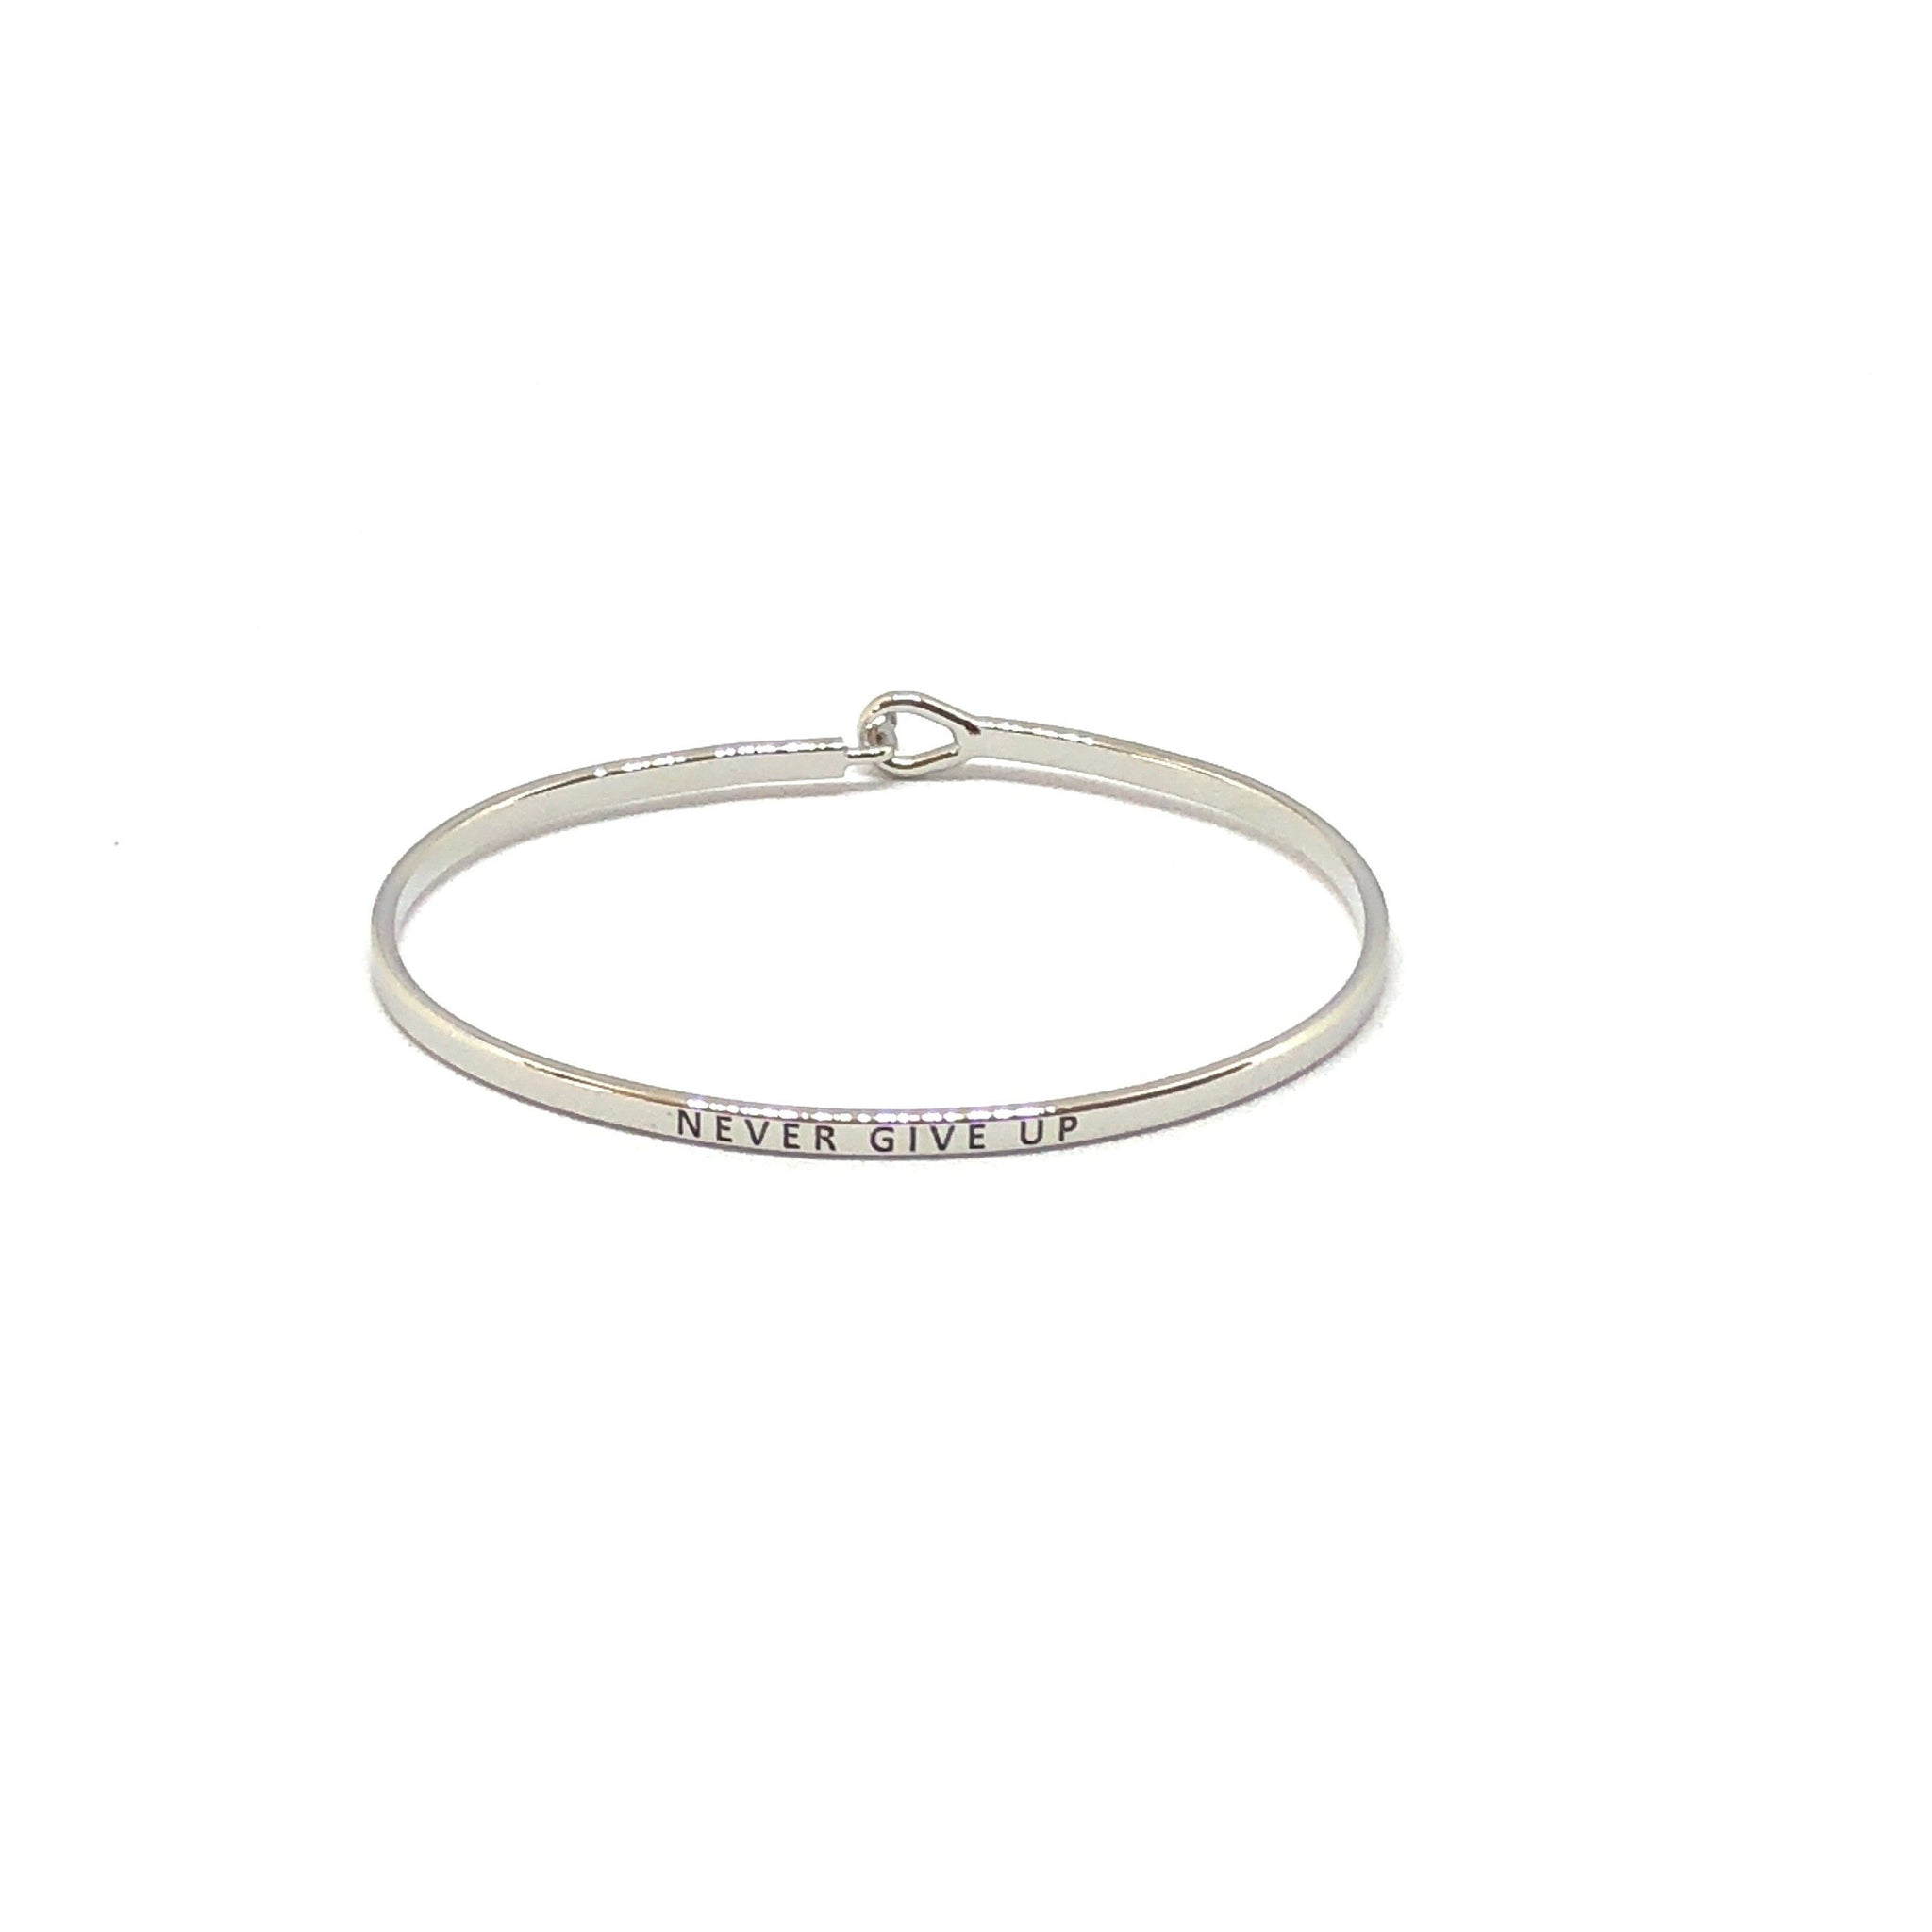 Never Give Up Inspirational Bangle - SPREE